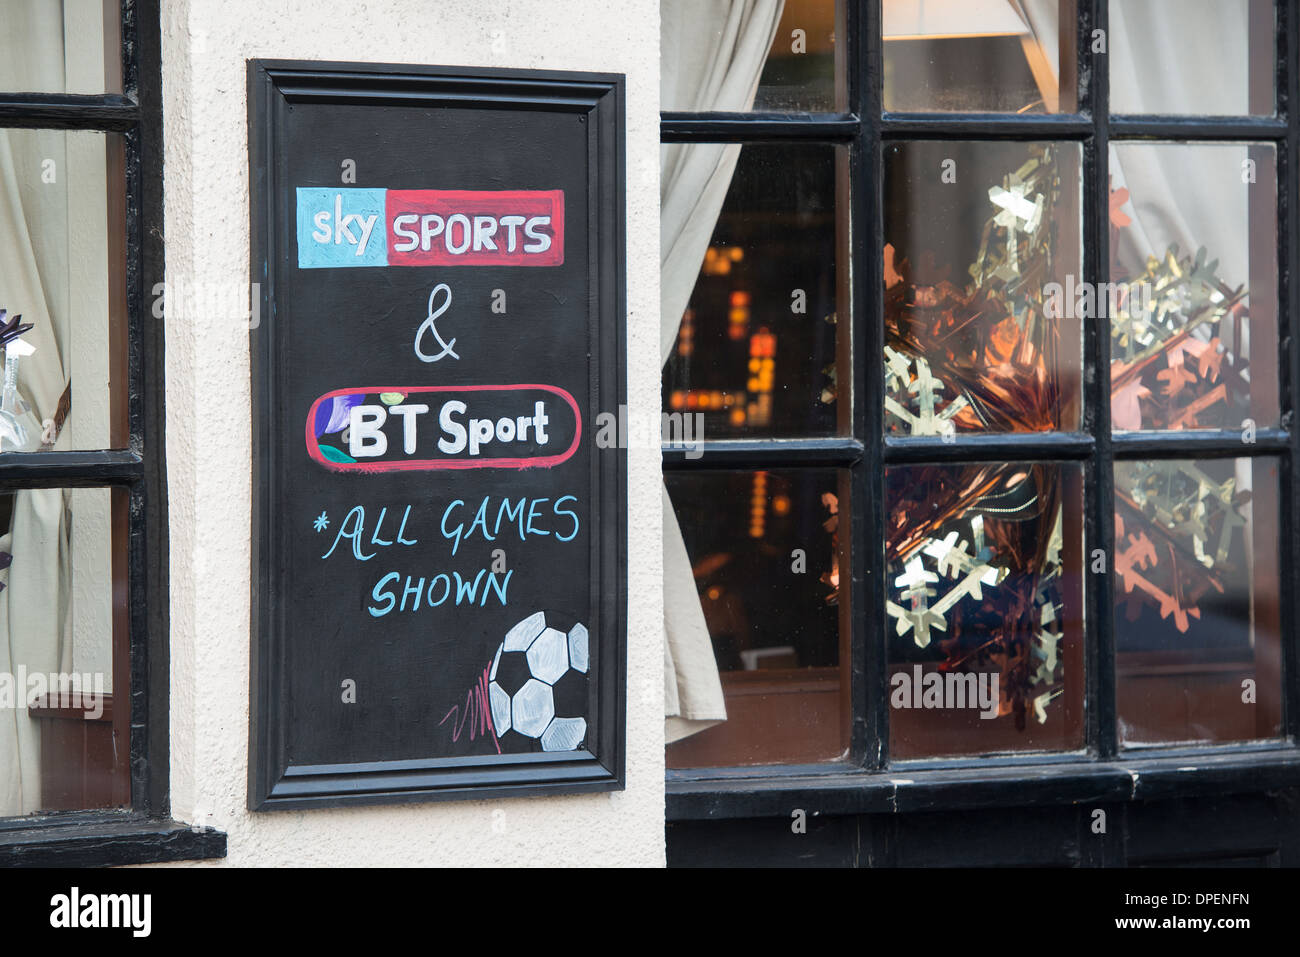 sky sports bt sport tv coverage sign on high street pub in Fareham, Hampshire. - Stock Image